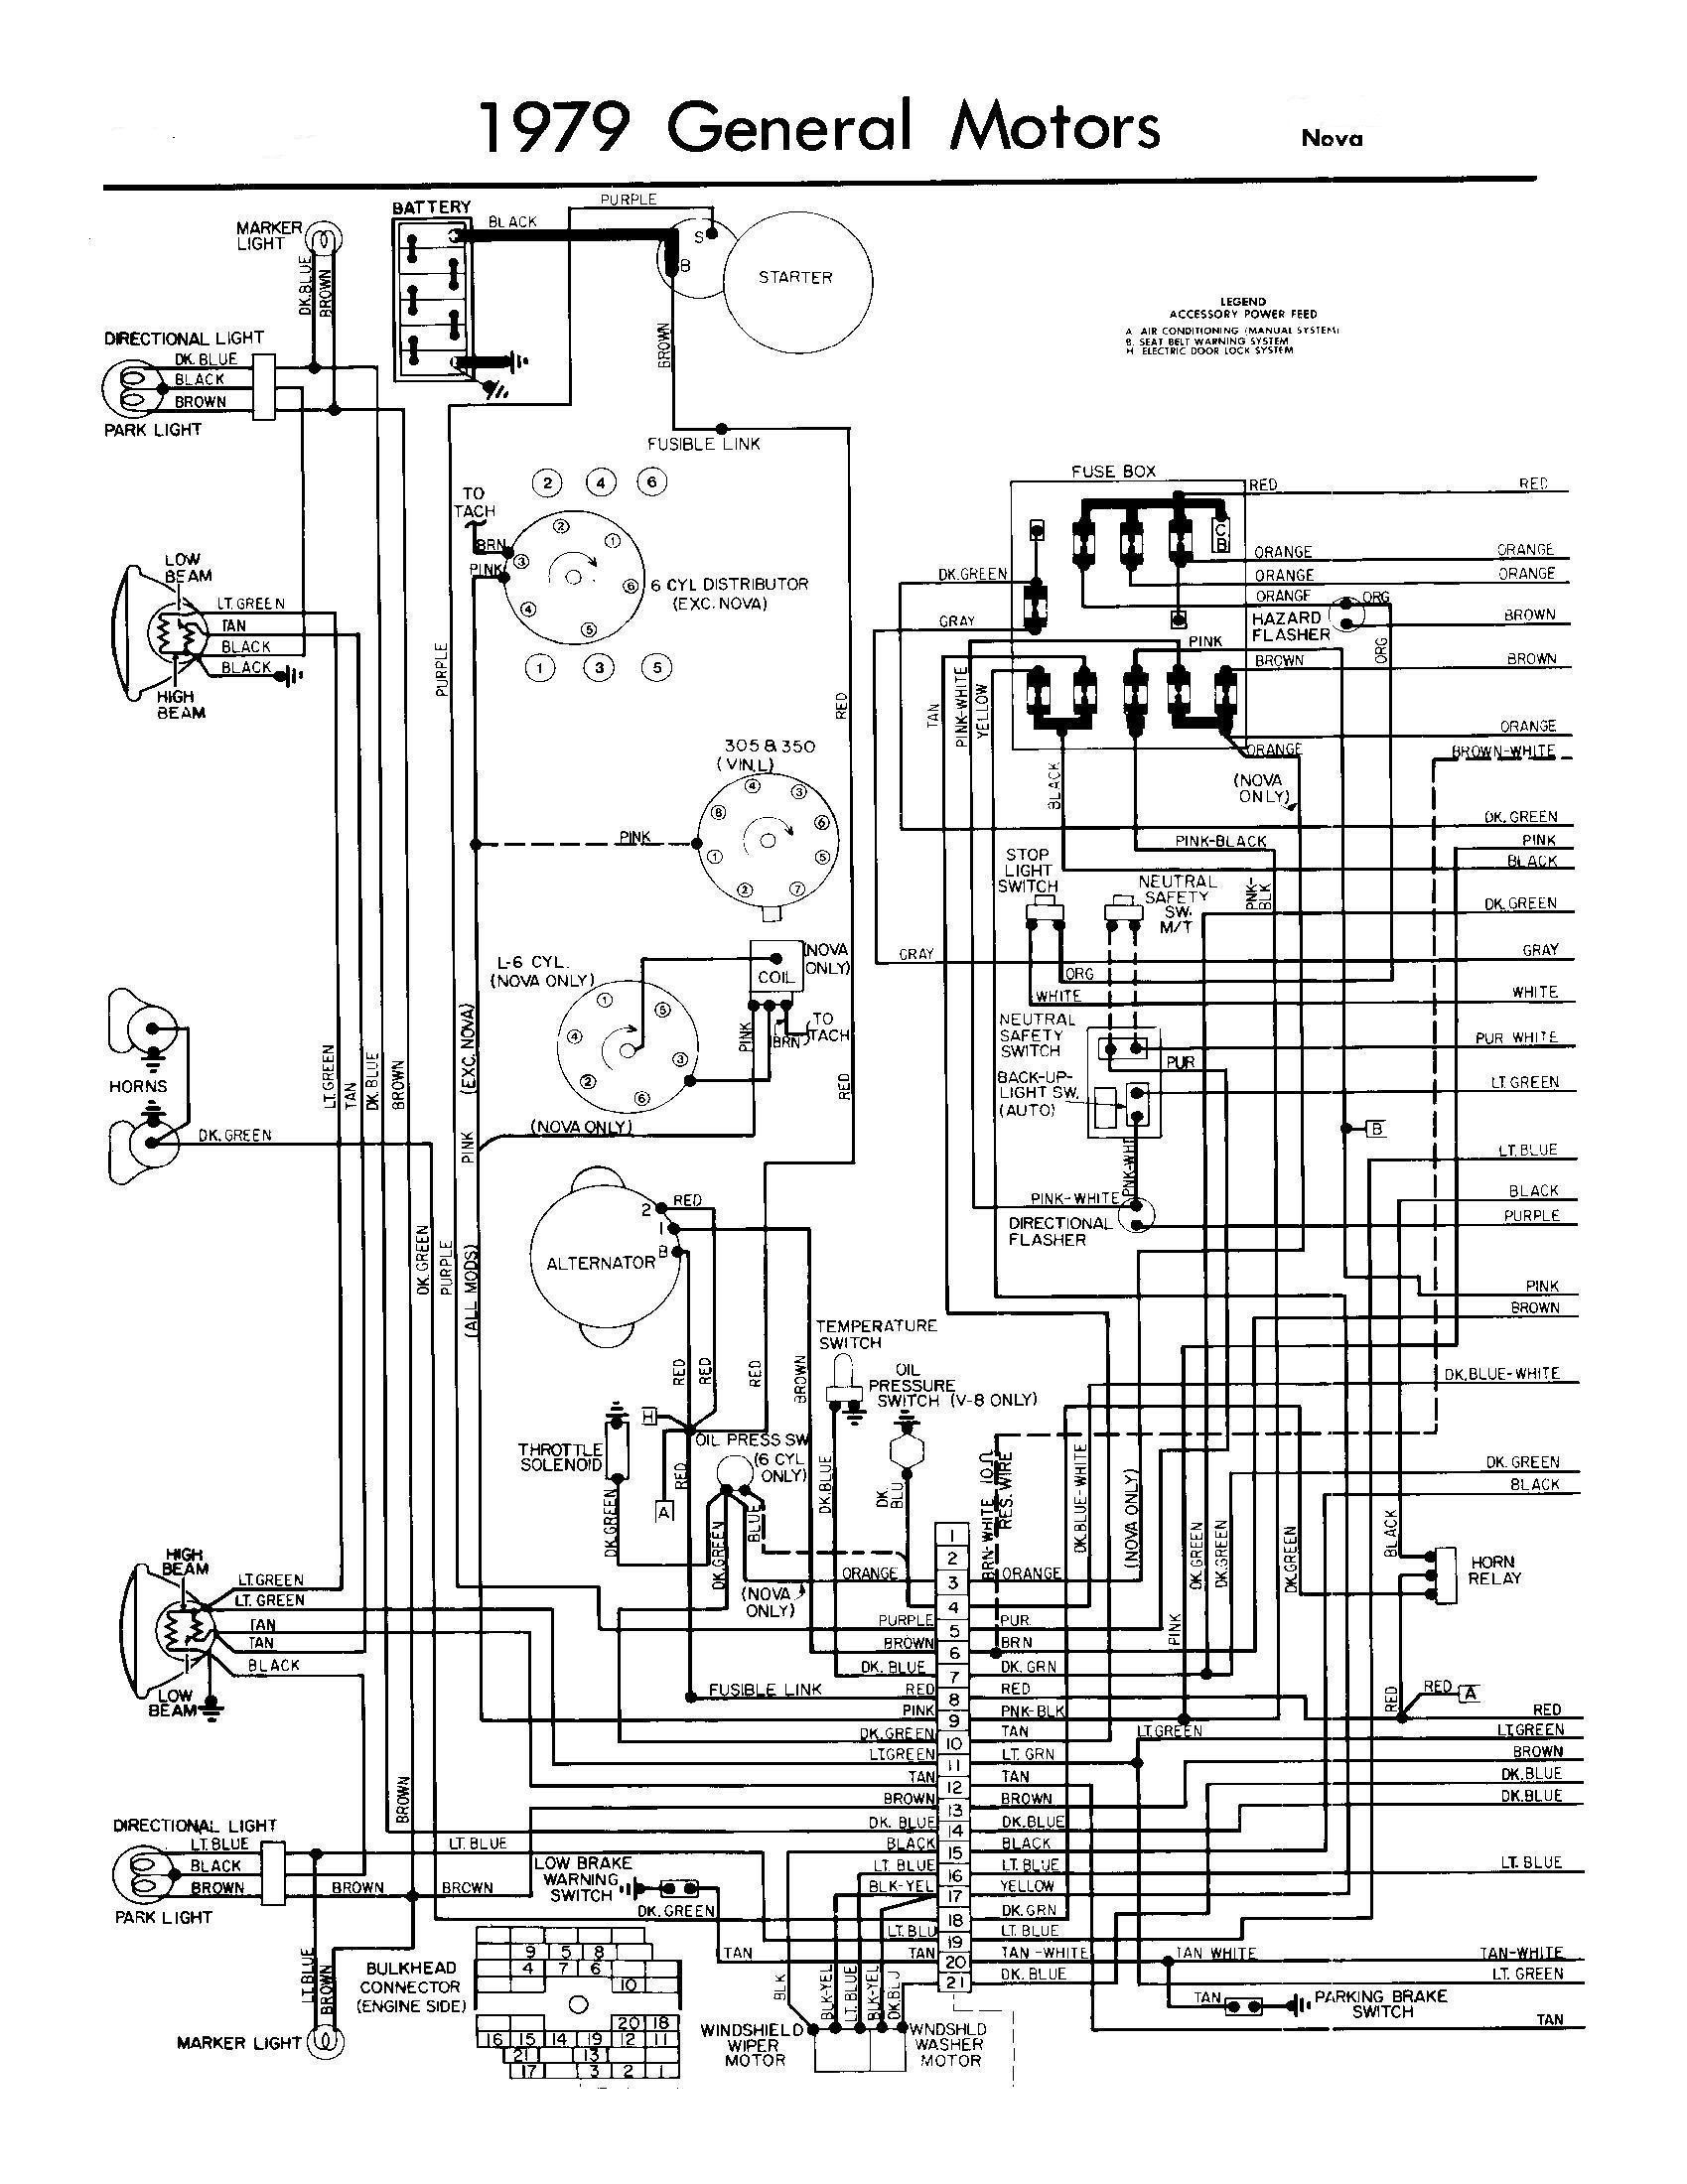 72 Road Runner Wiring Diagram Master Blogs Nova Windshield Wipers Explained Rh 8 11 Corruptionincoal Org Charger 70 Roadrunner